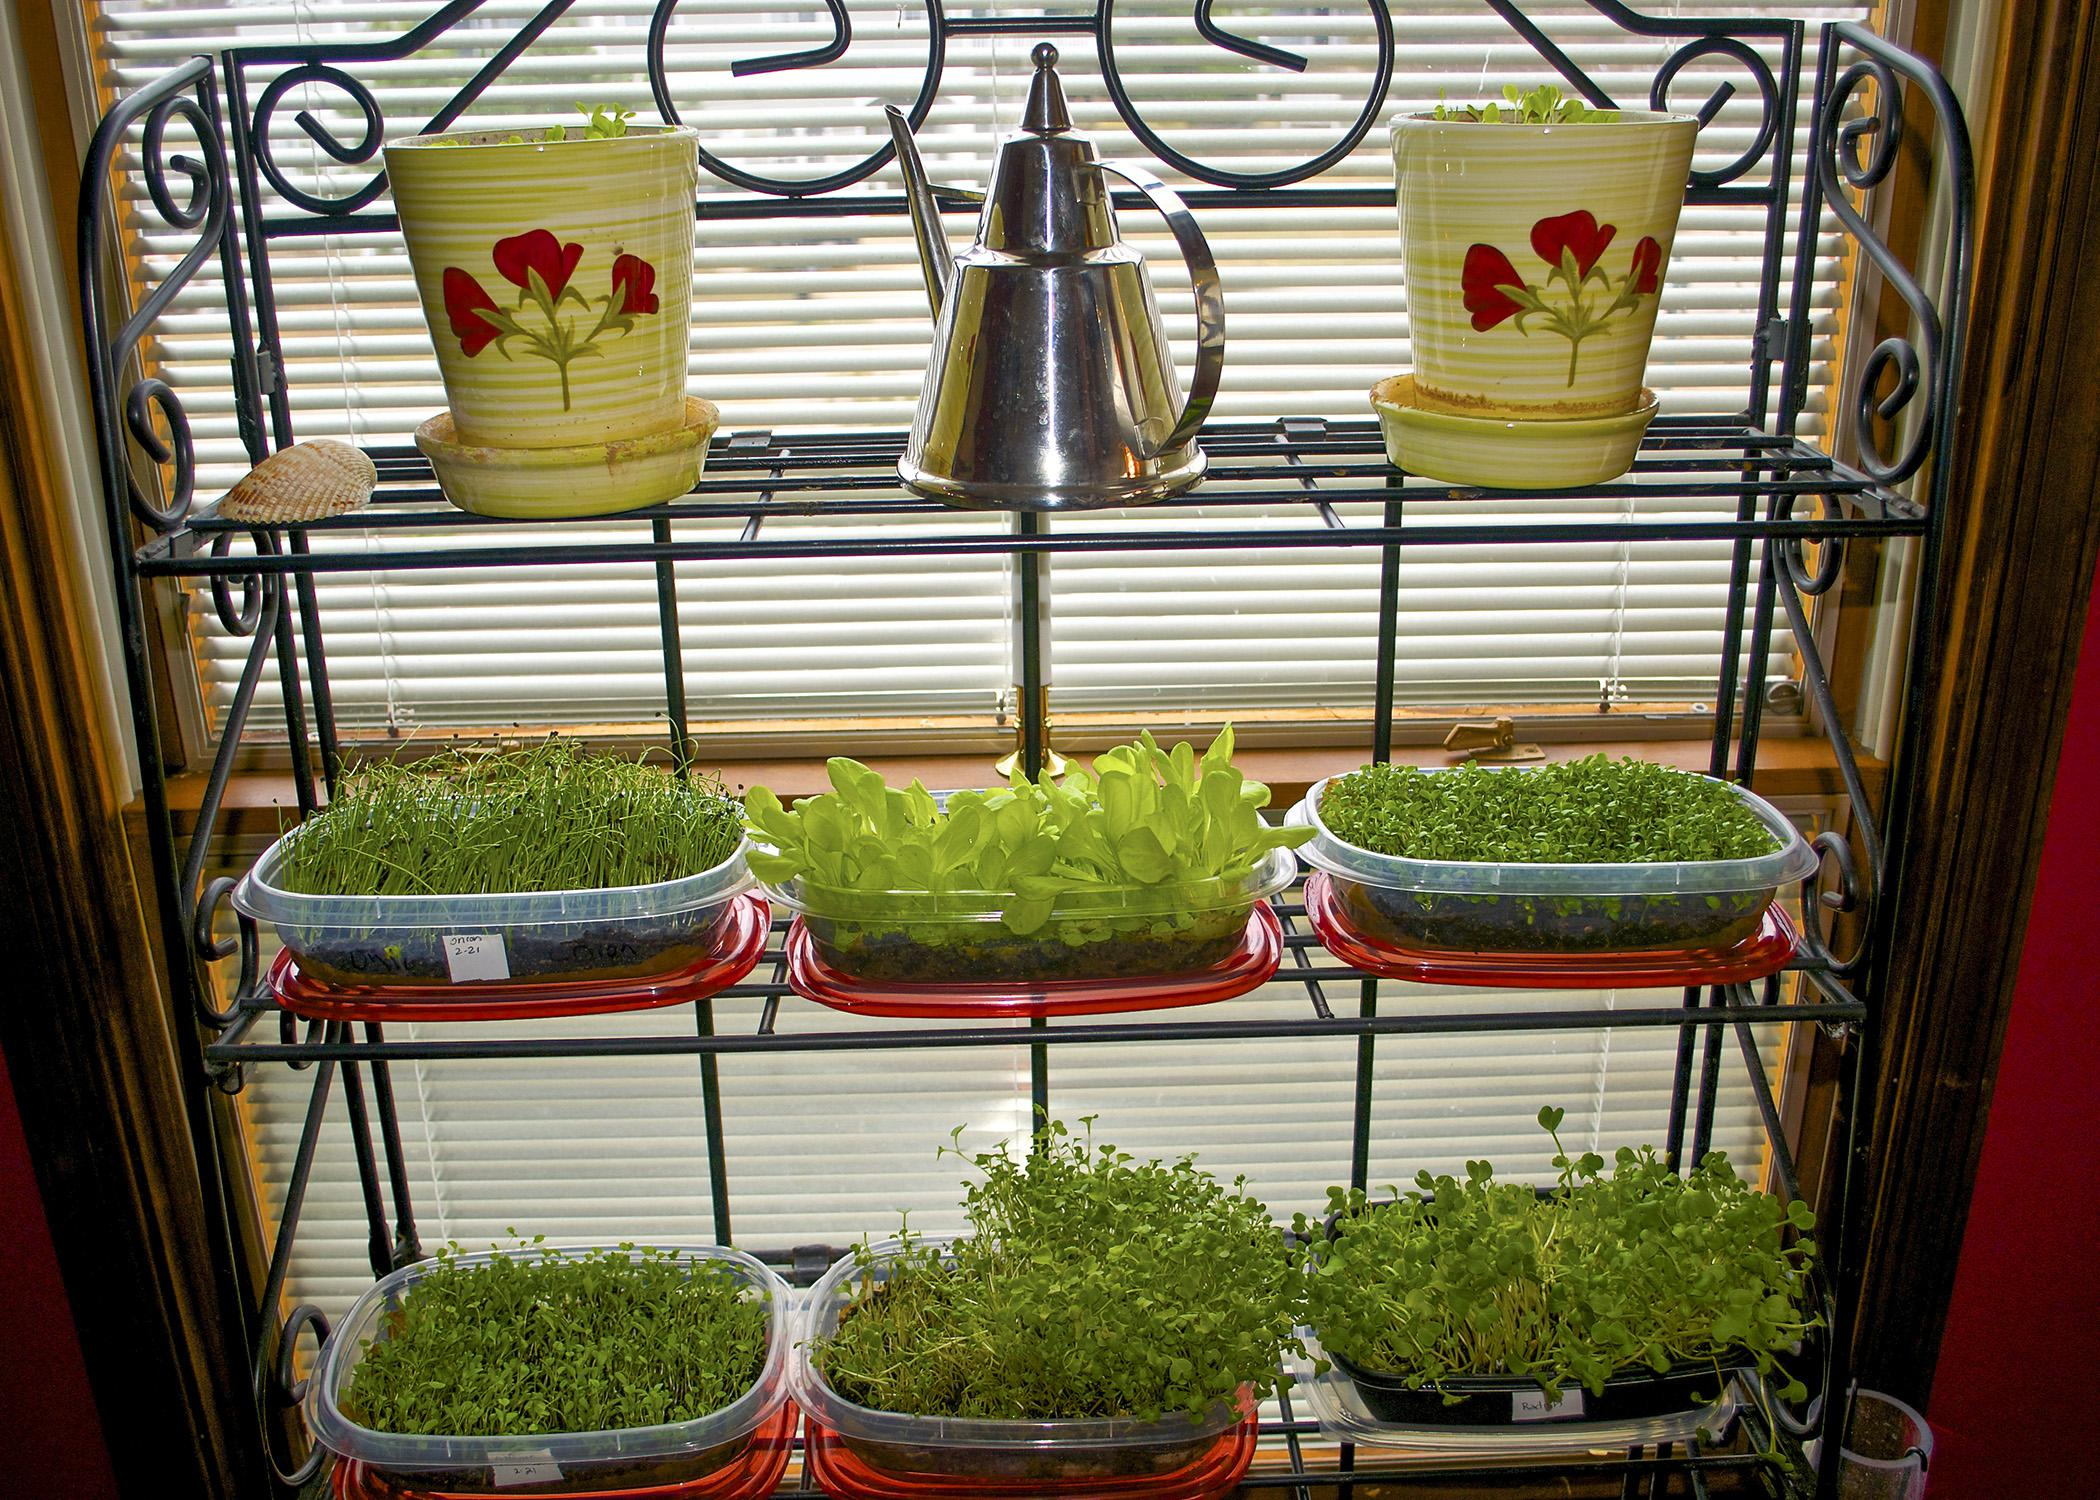 Microgreens can be grown in plastic storage containers in front of a bright window. (Submitted Photo/Cindy Graf)